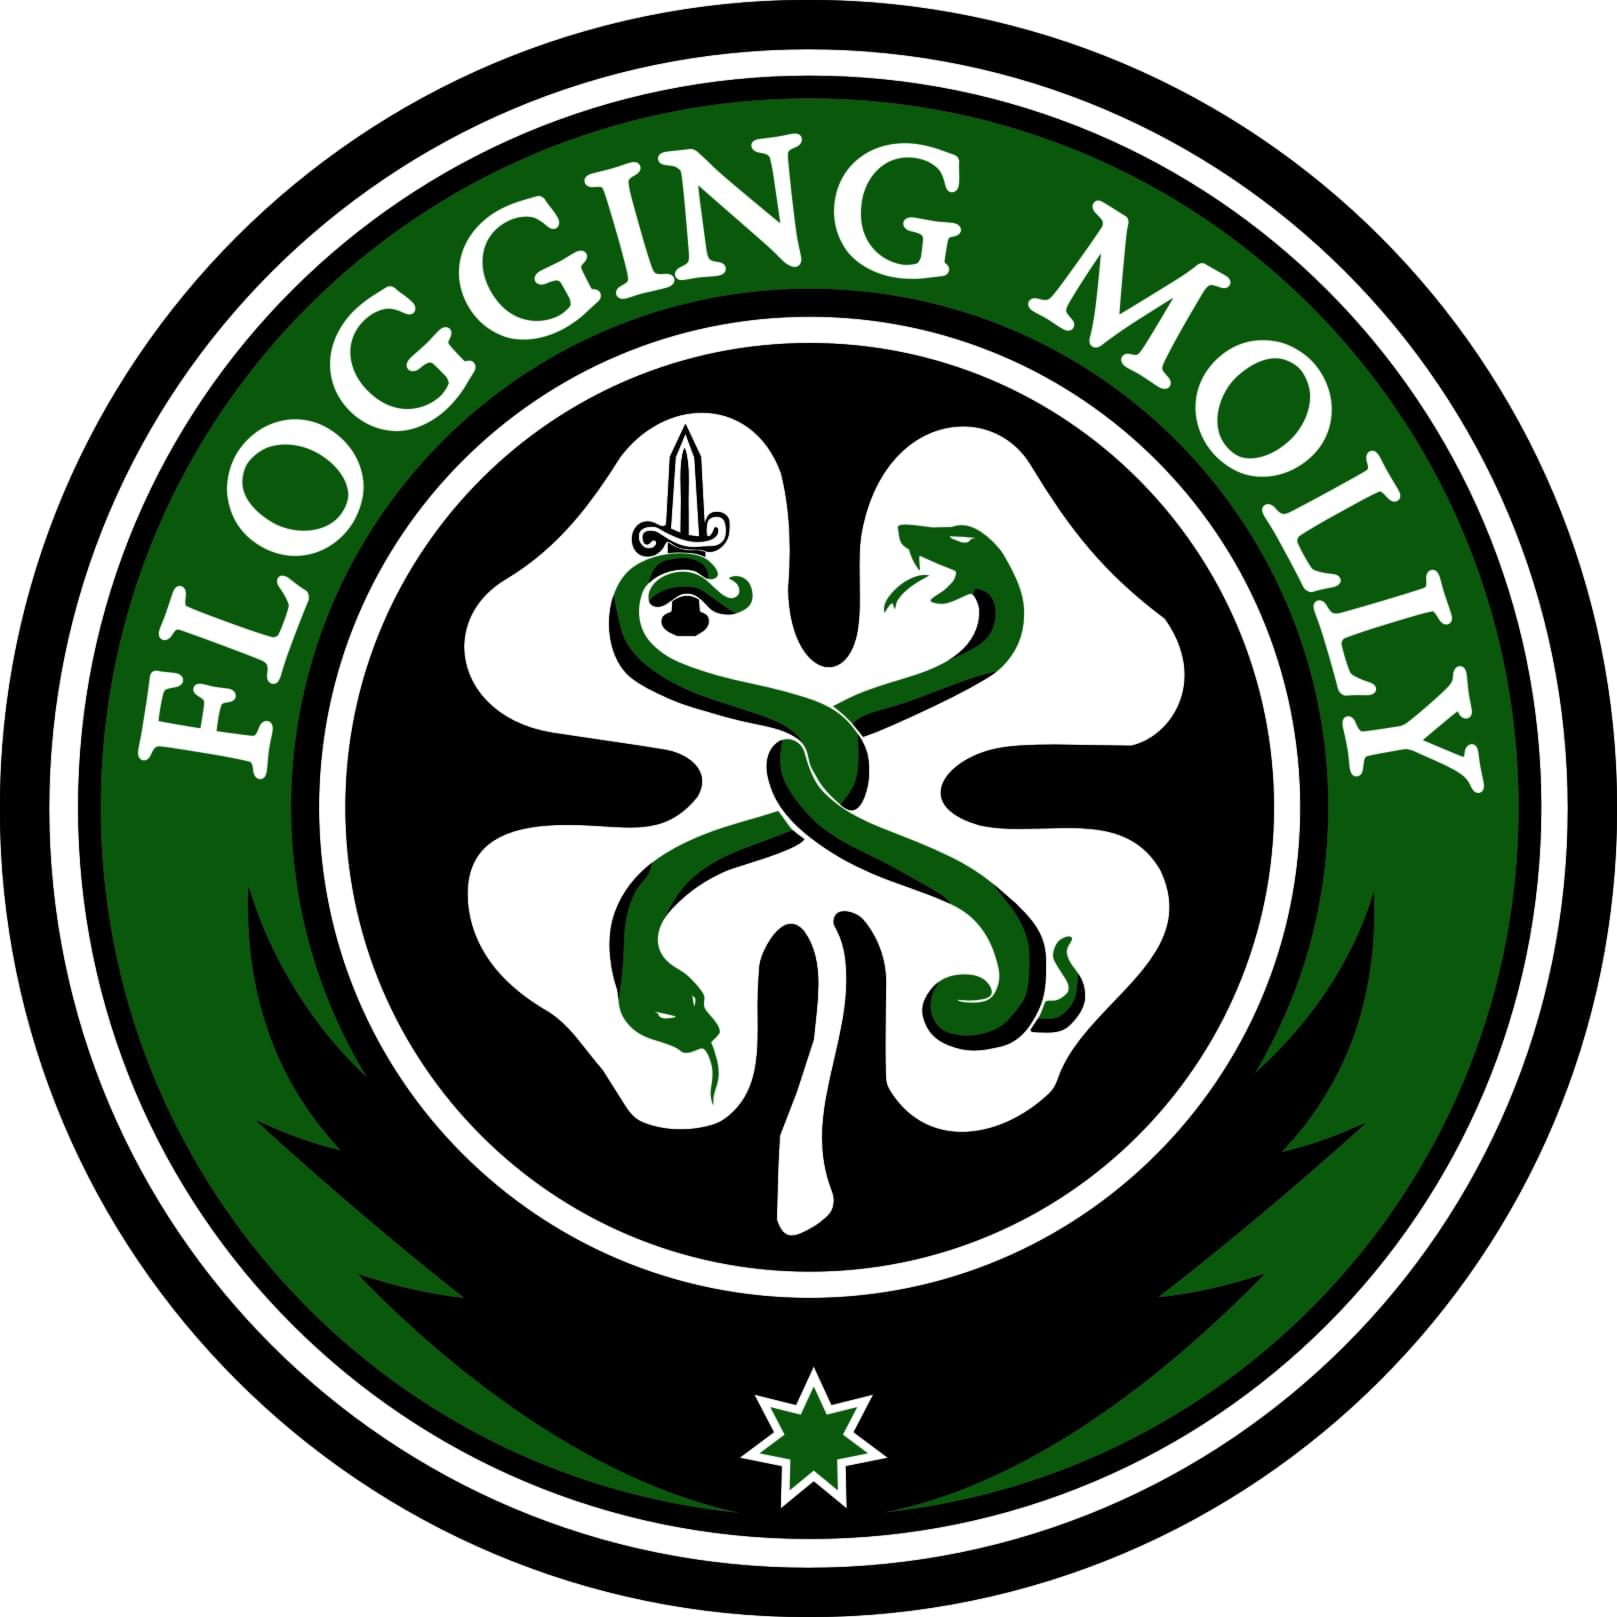 Flogging-Molly-Logo-flogging-molly-19428470-1617-1617